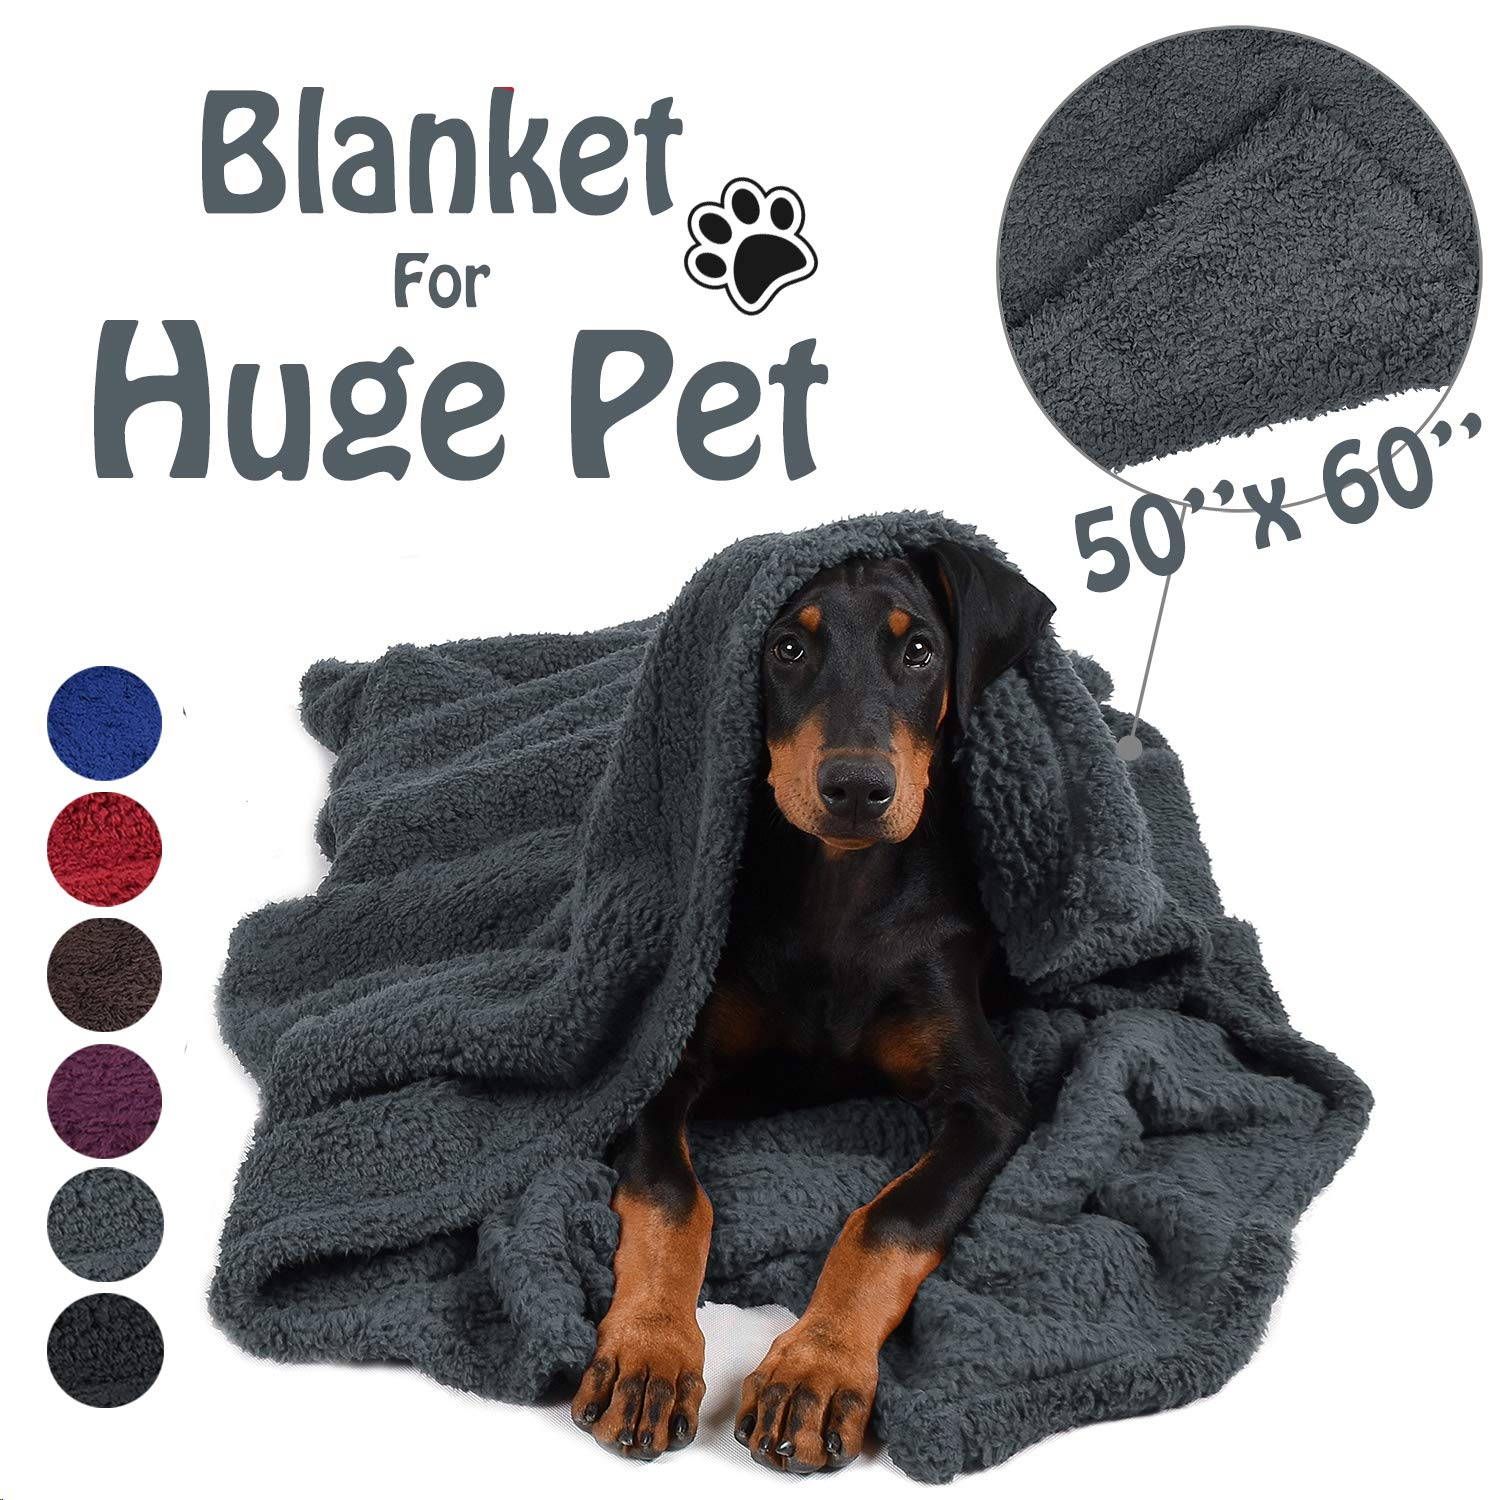 Pawsse Large Dog Sherpa Blanket 50'' x 60'', Super Soft Warm Plush Fleece Snuggle Pet Blanket Throw Cover for Couch Car Trunk Cage Kennel Dog Carrier, Grey